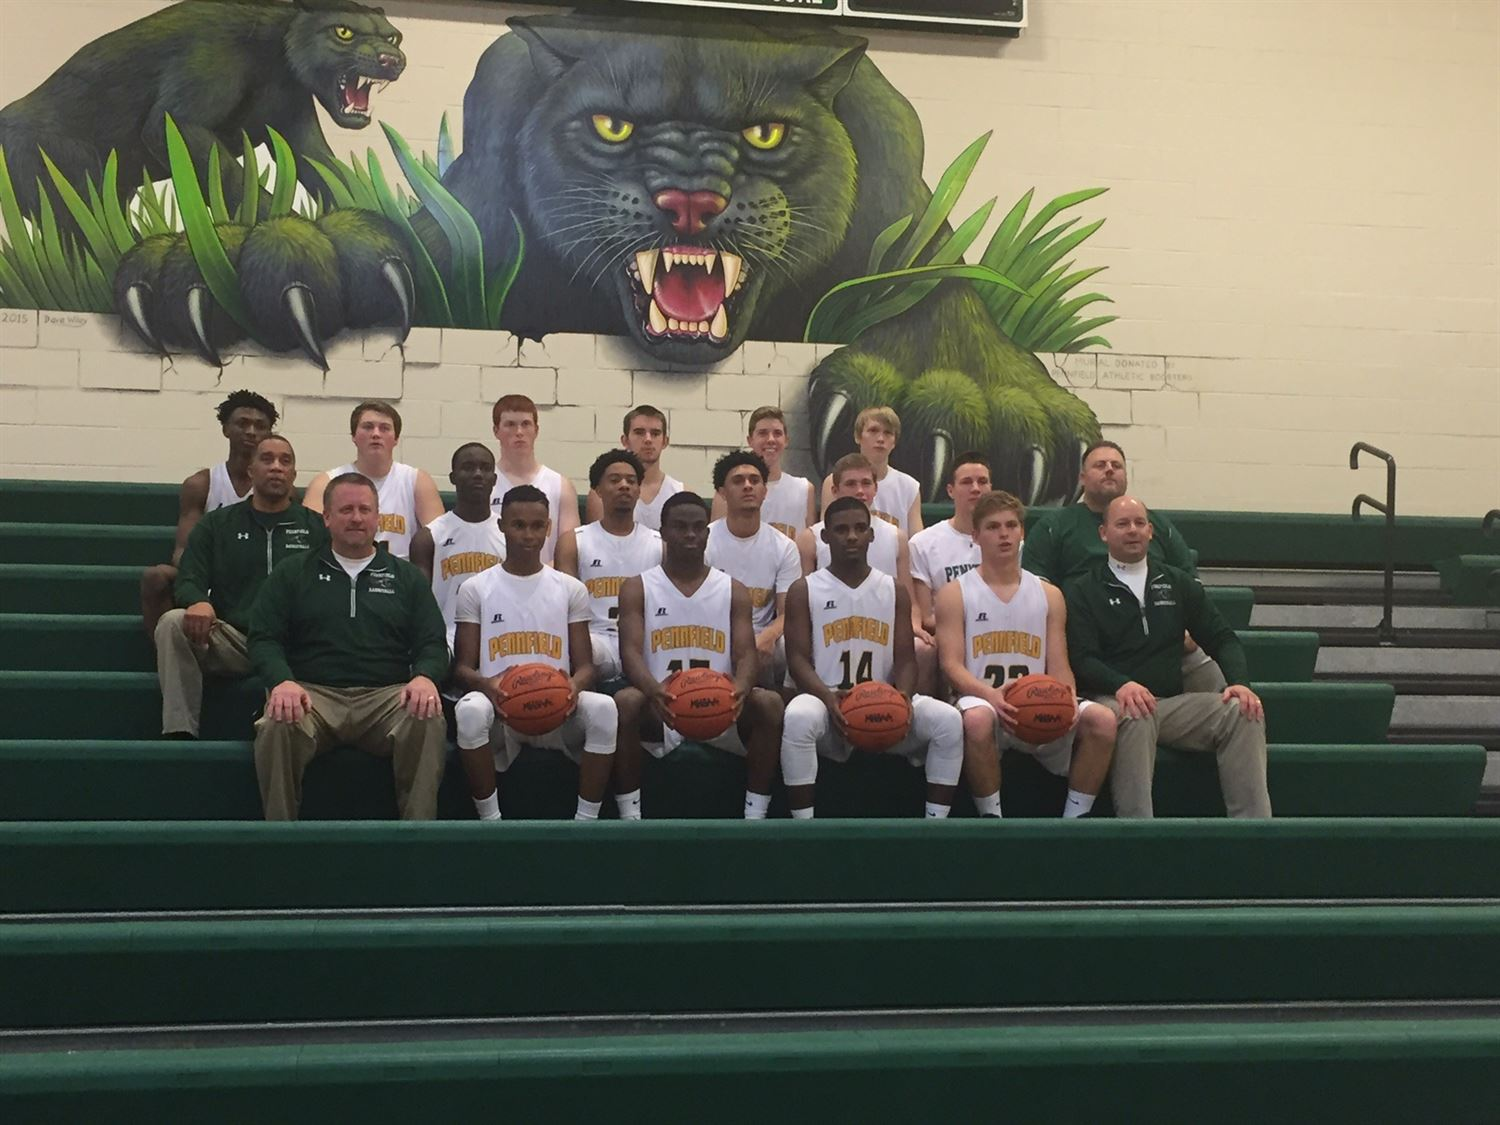 Pennfield High School - Boys' Varsity Basketball